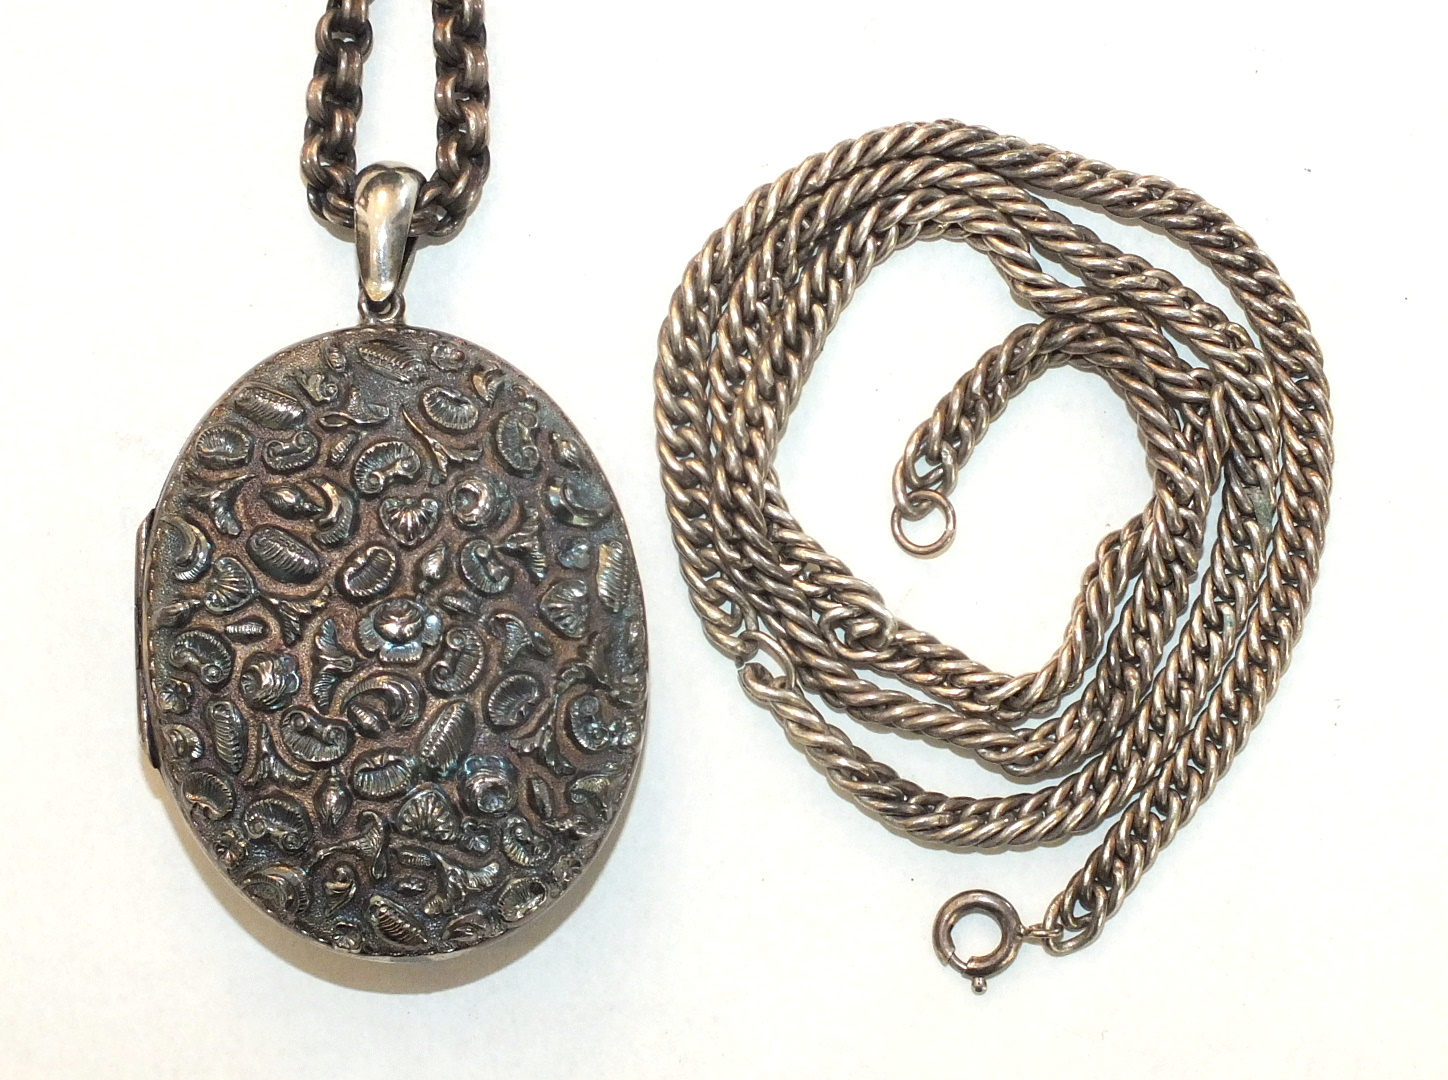 A large white metal locket embossed on both sides with flowers, leaves and shells, and two